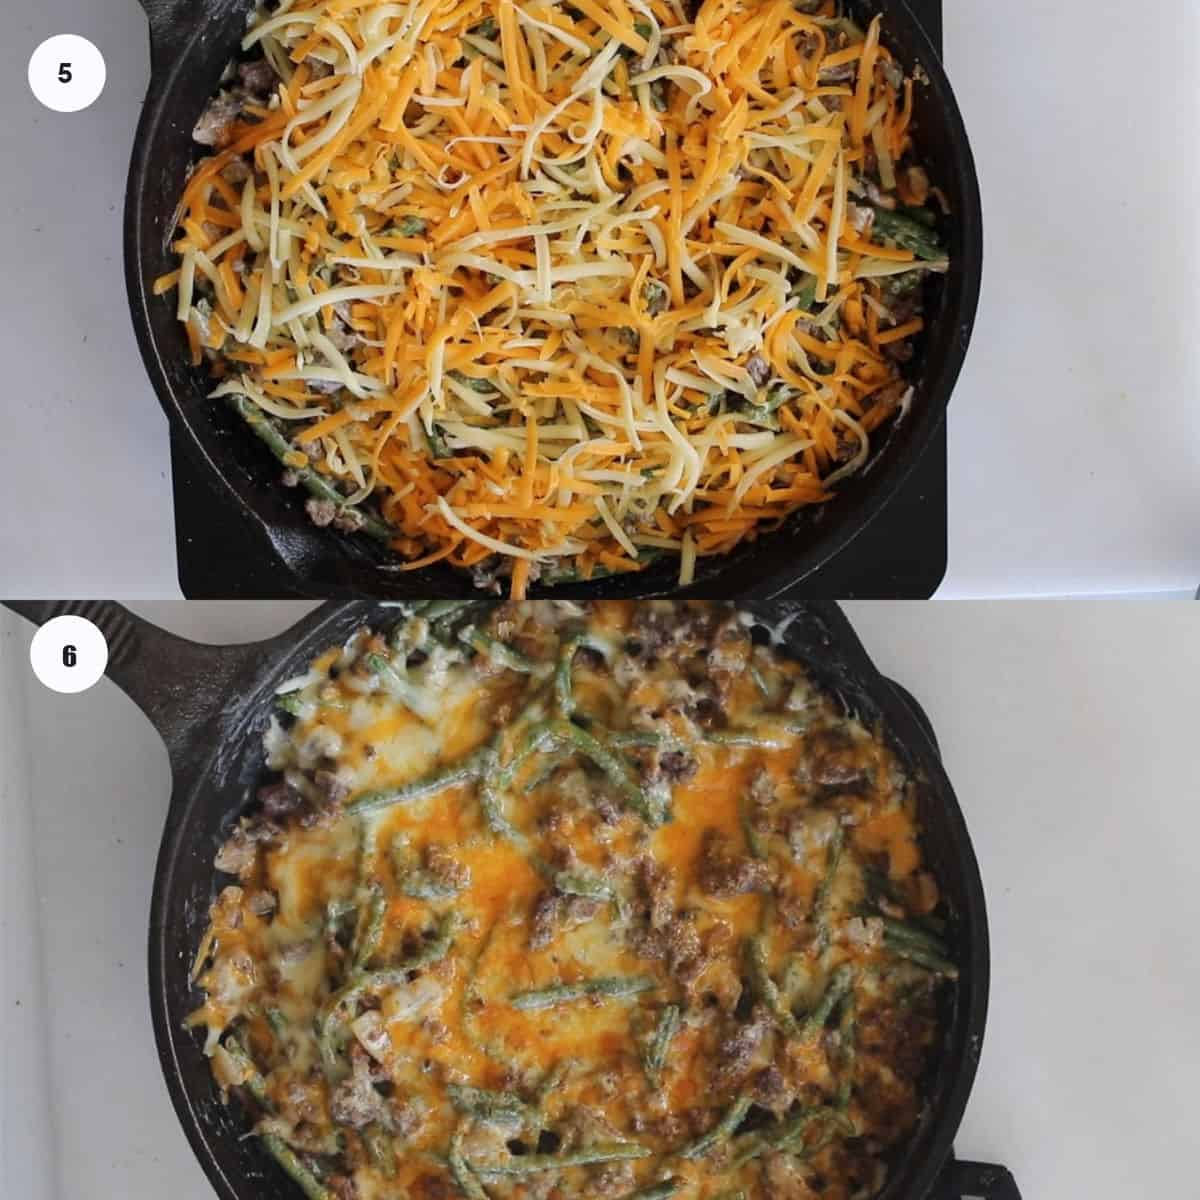 keto hamburger casserole recipe steps collage photo of adding cheese and melting it